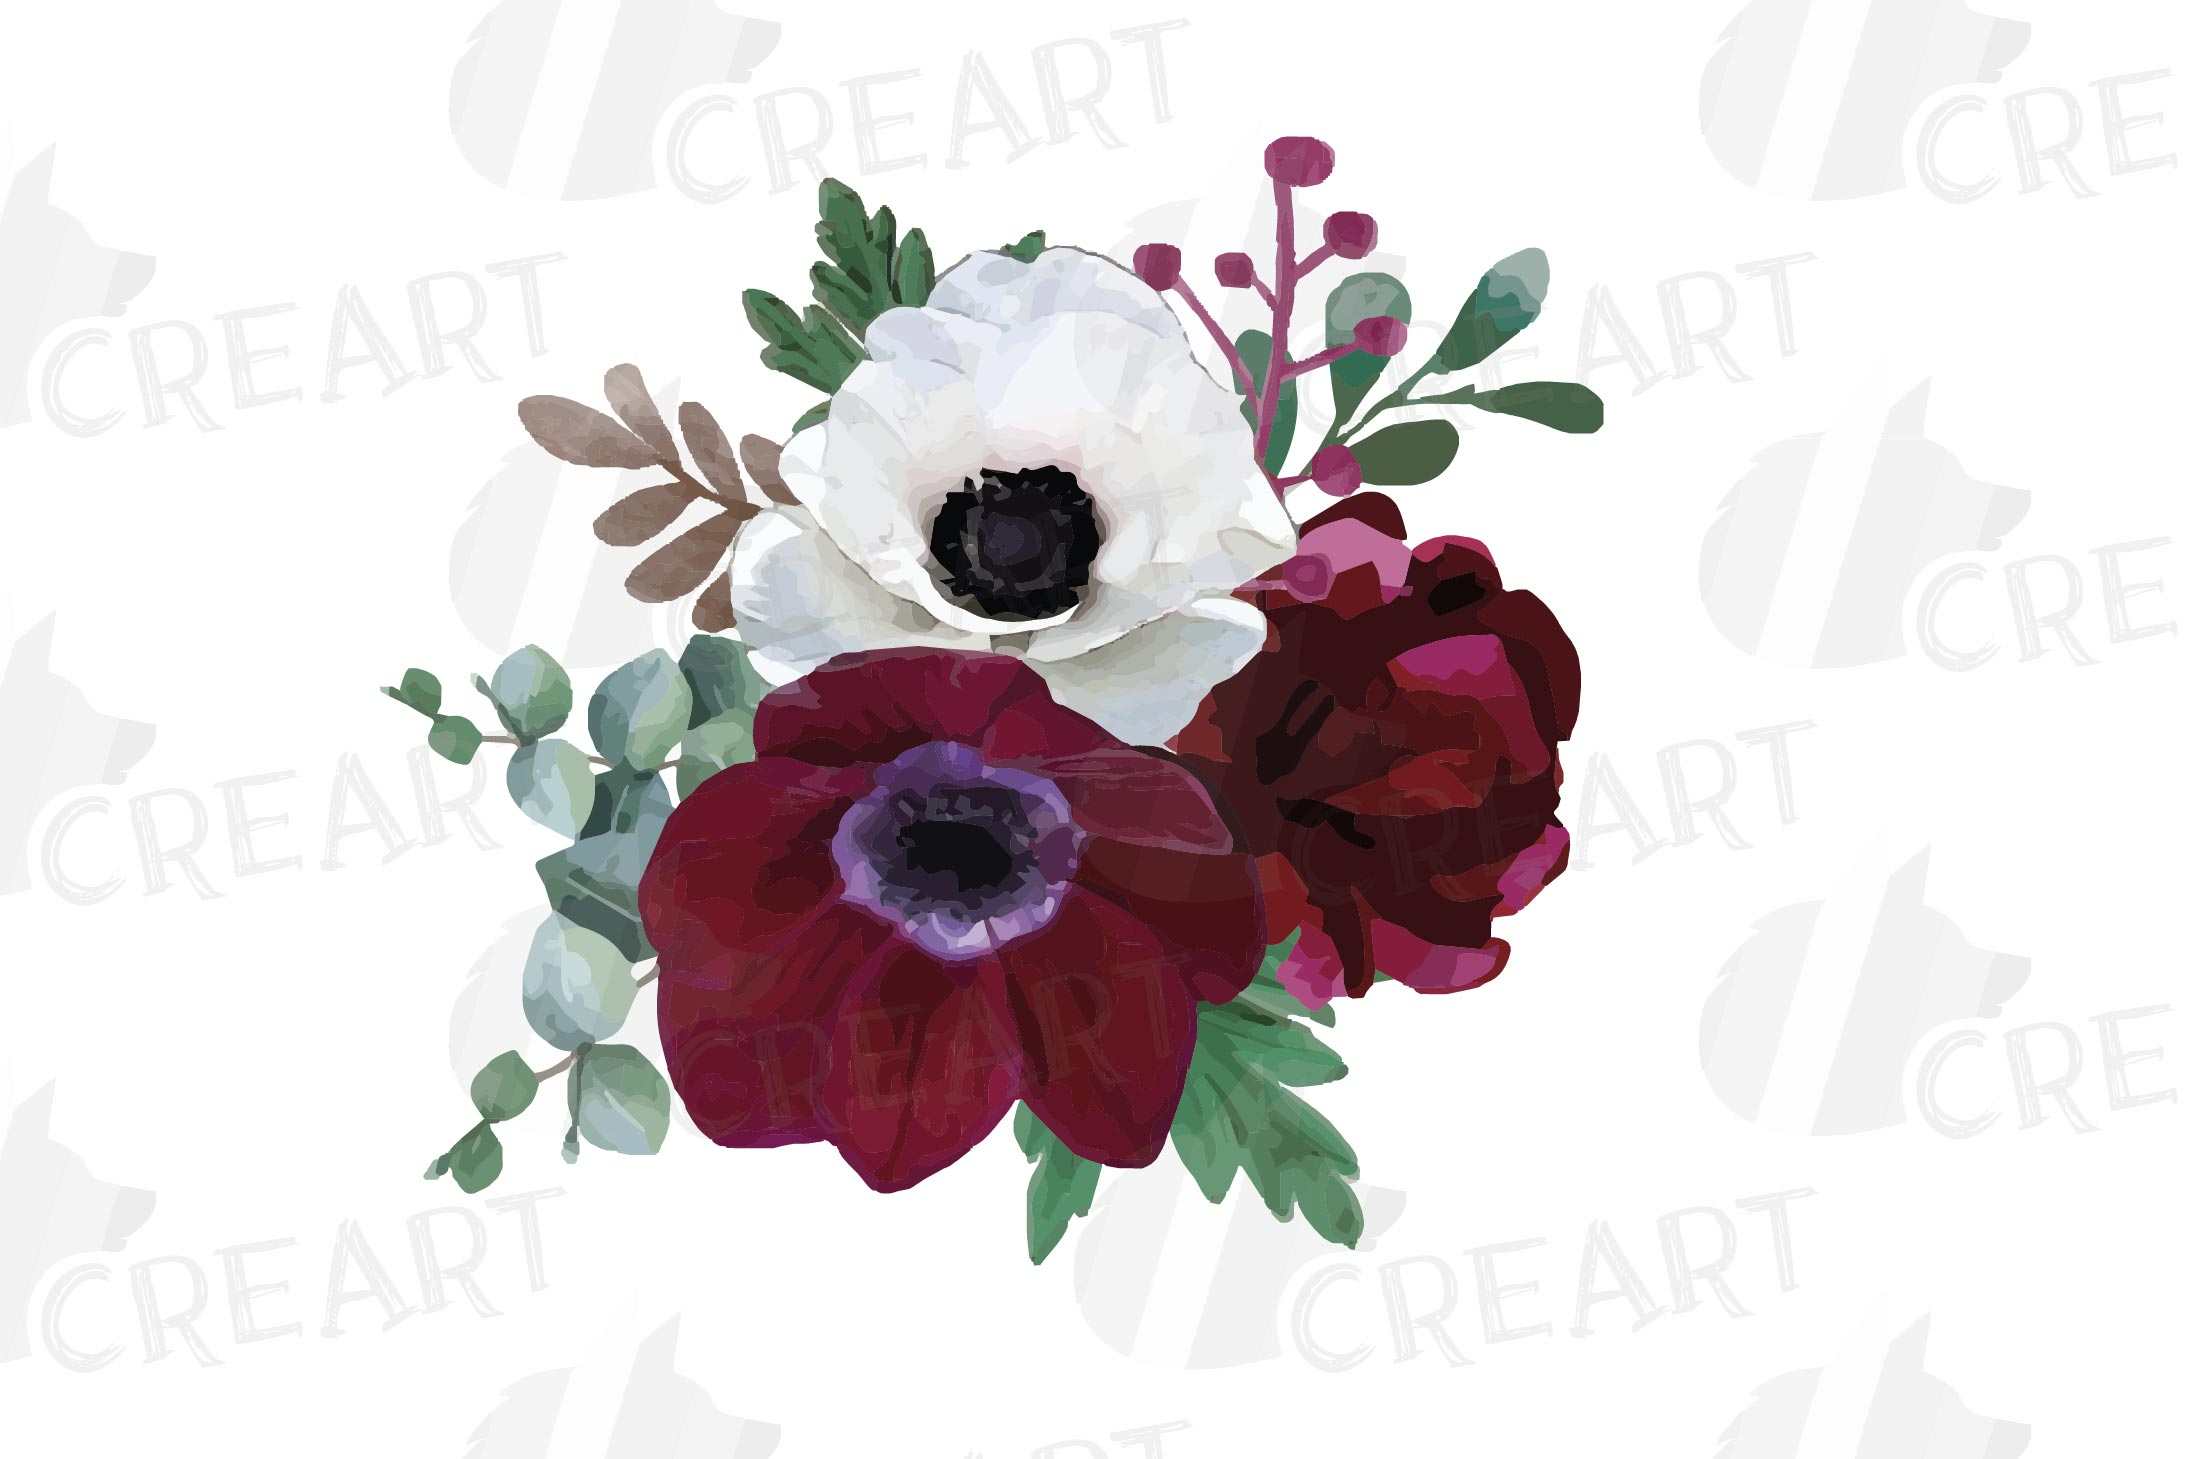 Watercolor elegant floral bouquets 2, rose, anemone decor example image 9